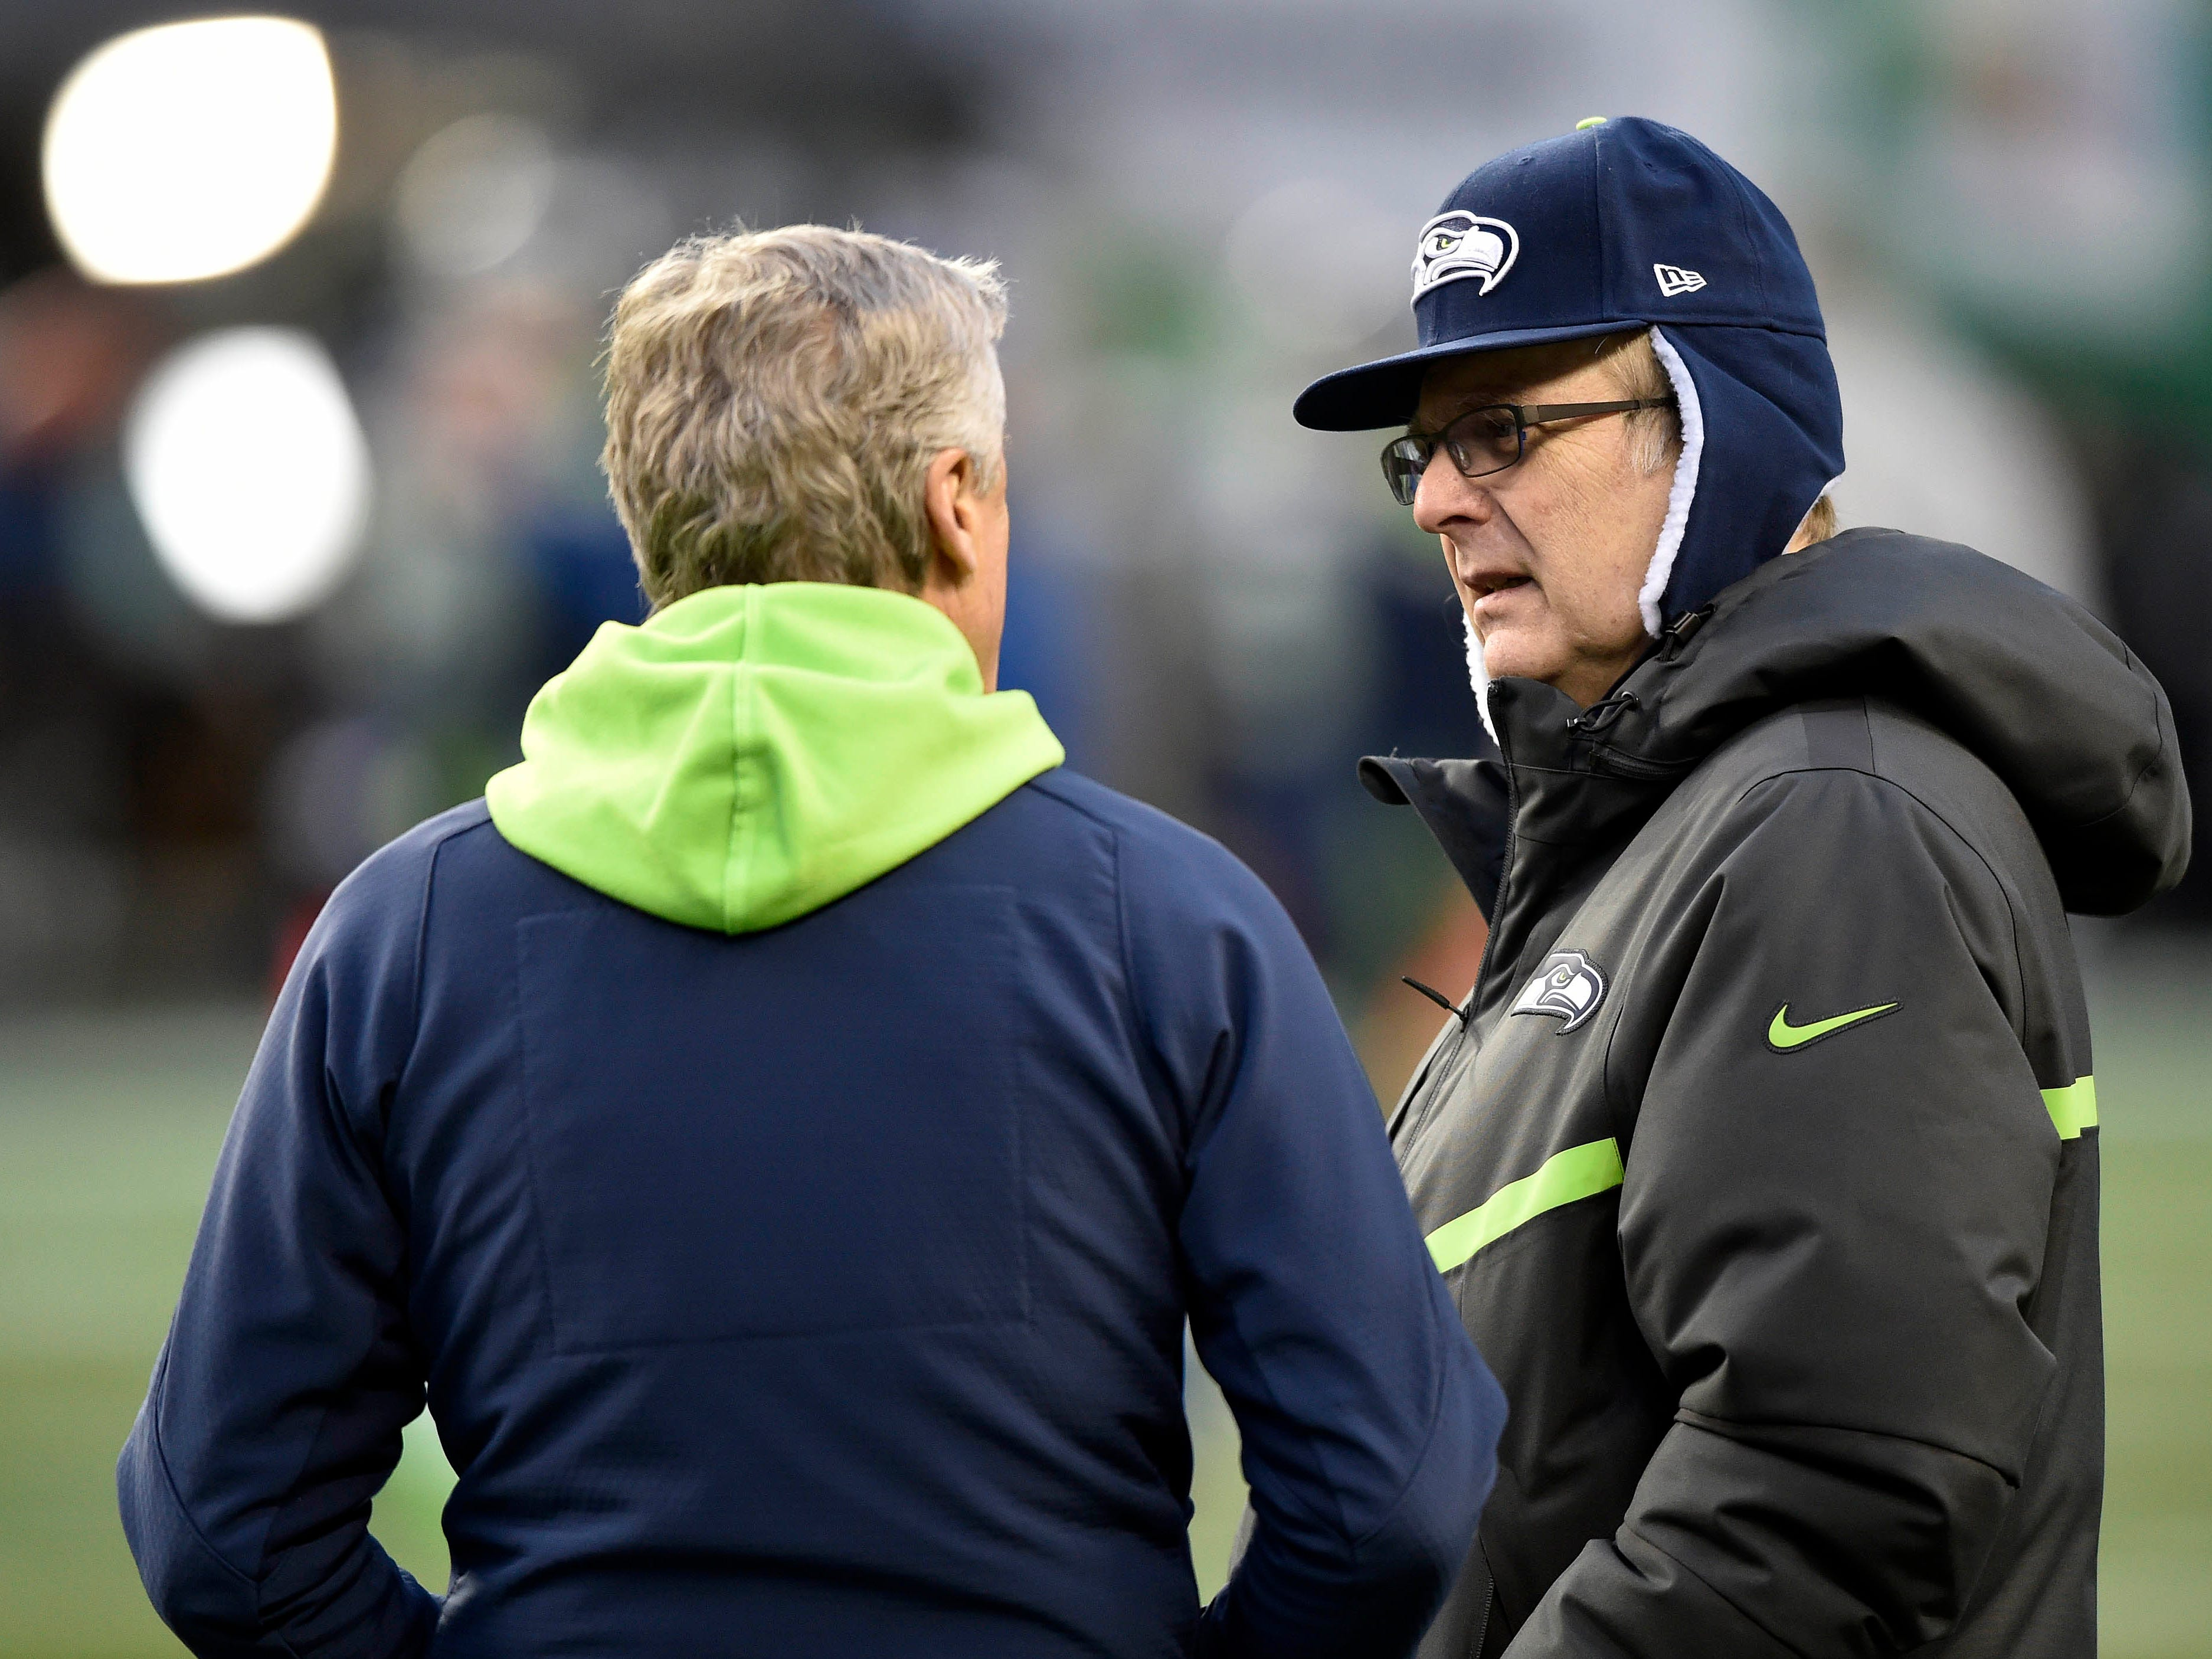 Seattle Seahawks majority owner Paul Allen, right, speaks with head coach Pete Carroll before the game against the Detroit Lions in the NFC Wild Card playoff football game in Seattle, Jan. 7, 2017.